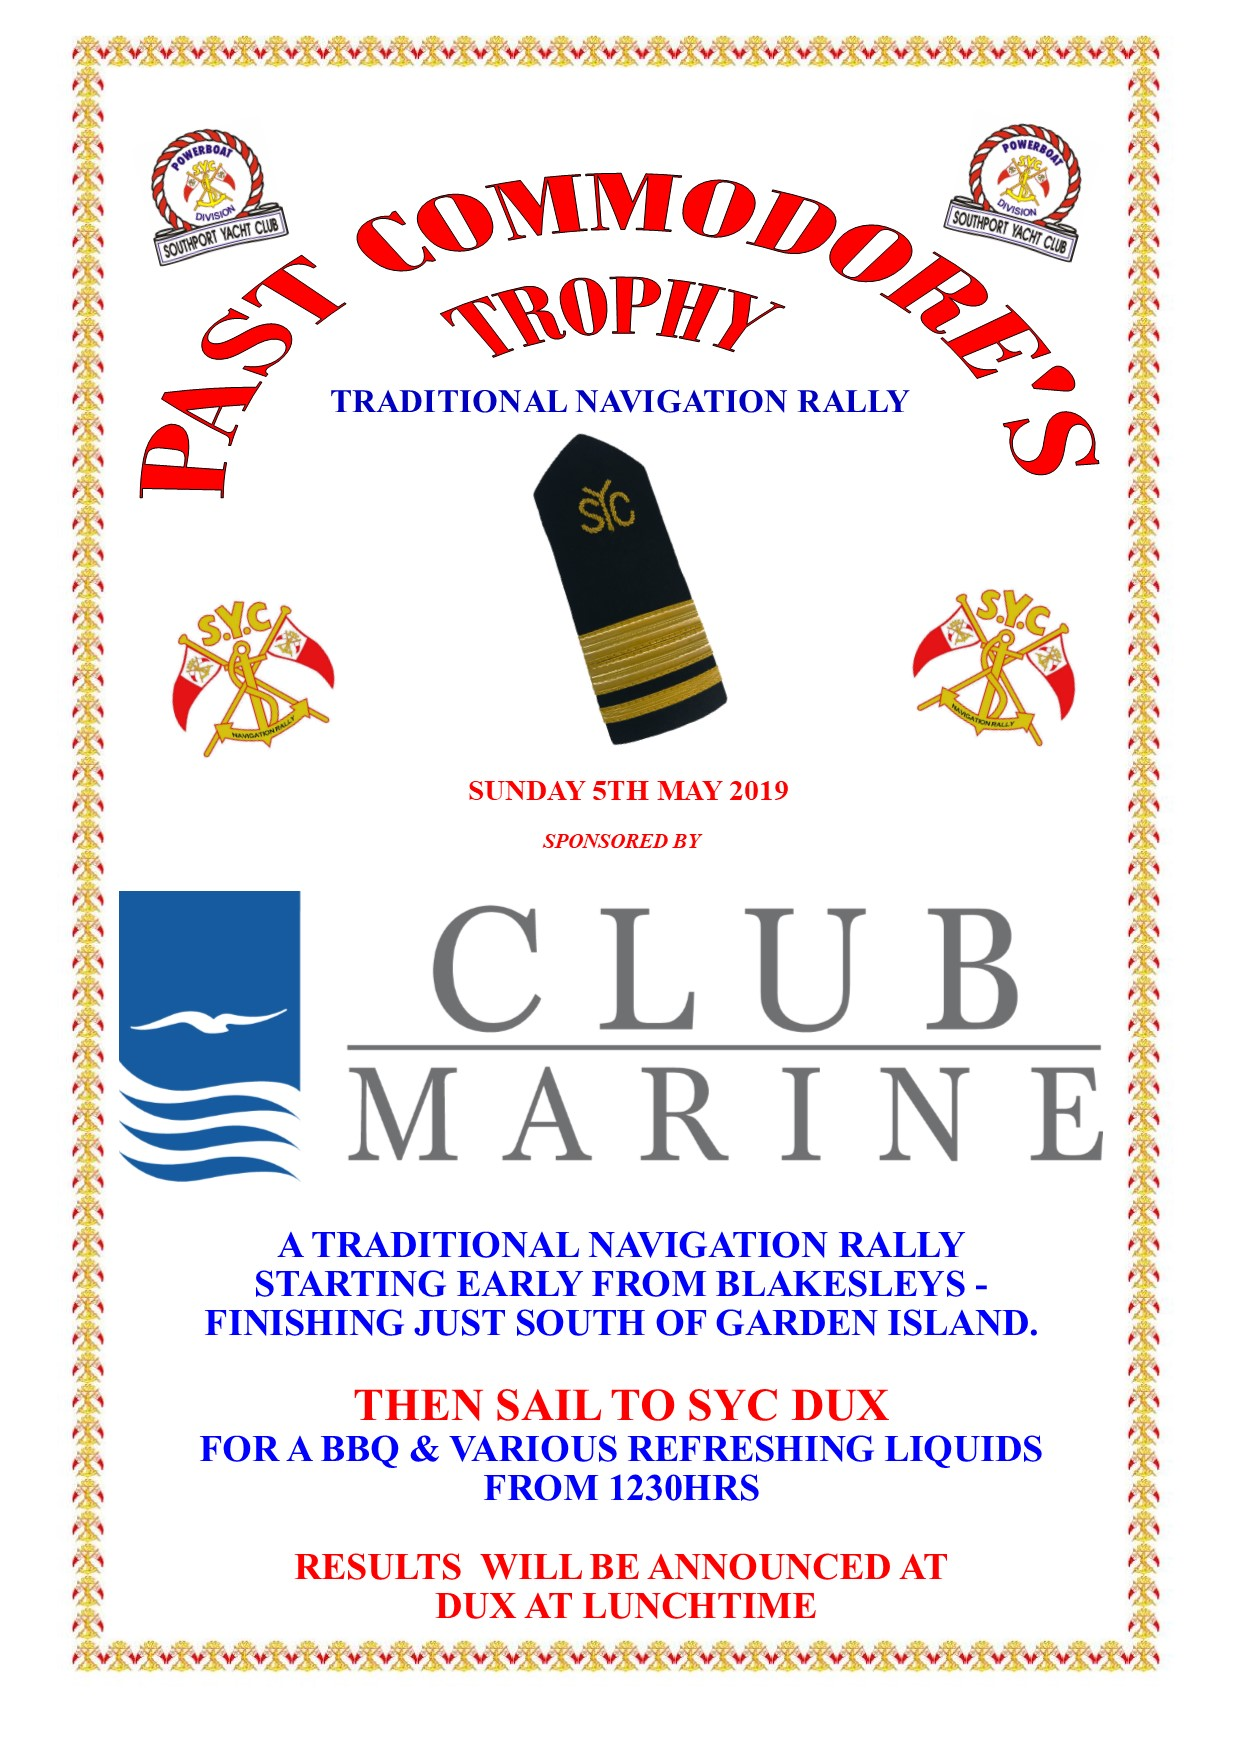 RelNt Past 2019 - Southport Yacht Club